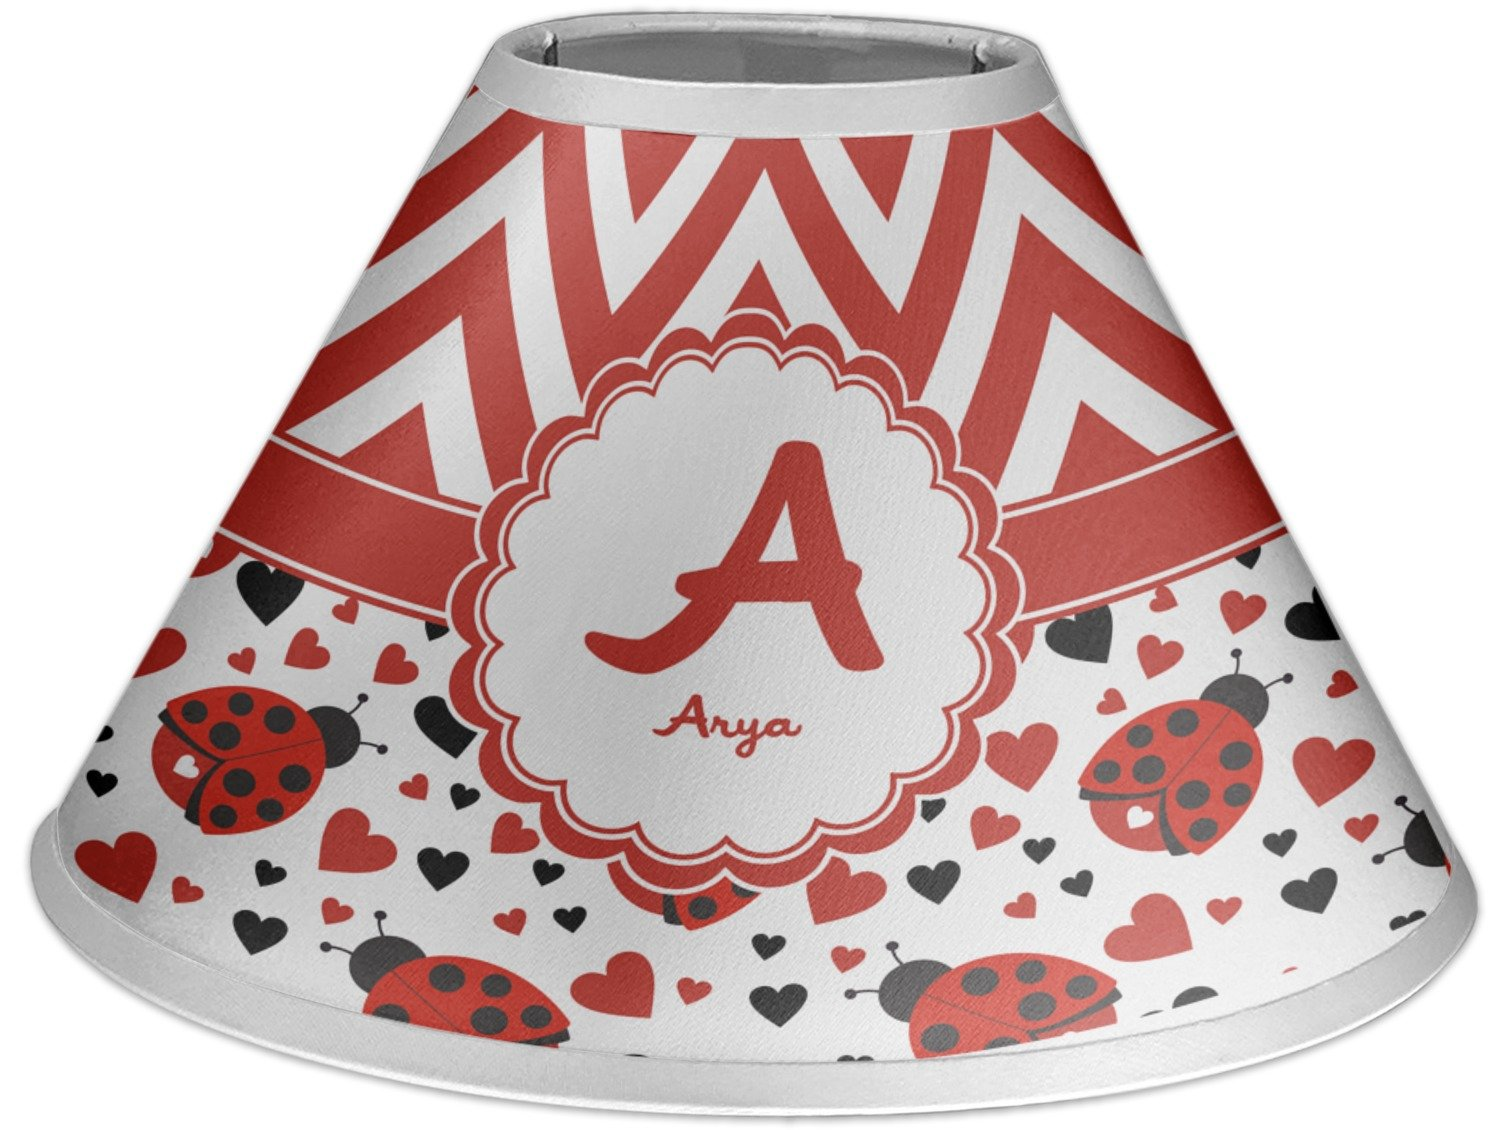 RNK Shops Ladybugs & Chevron Coolie Lamp Shade (Personalized)